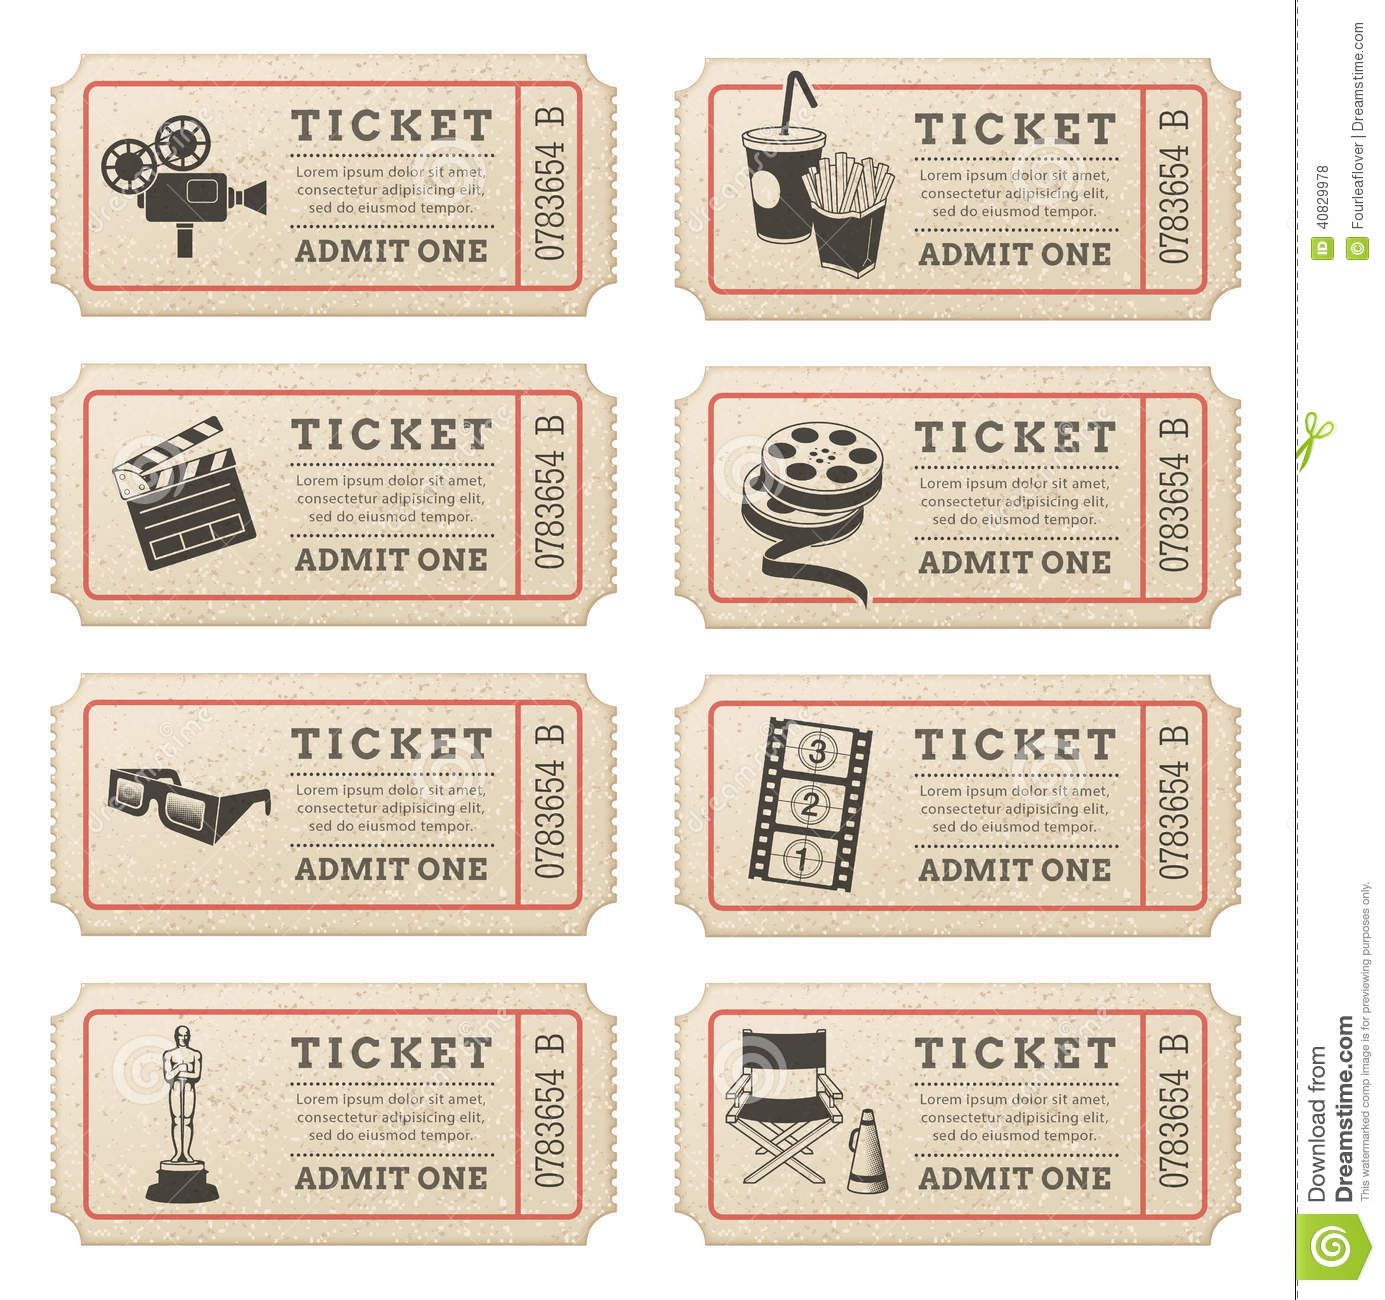 how to ask for tickets at the cinema